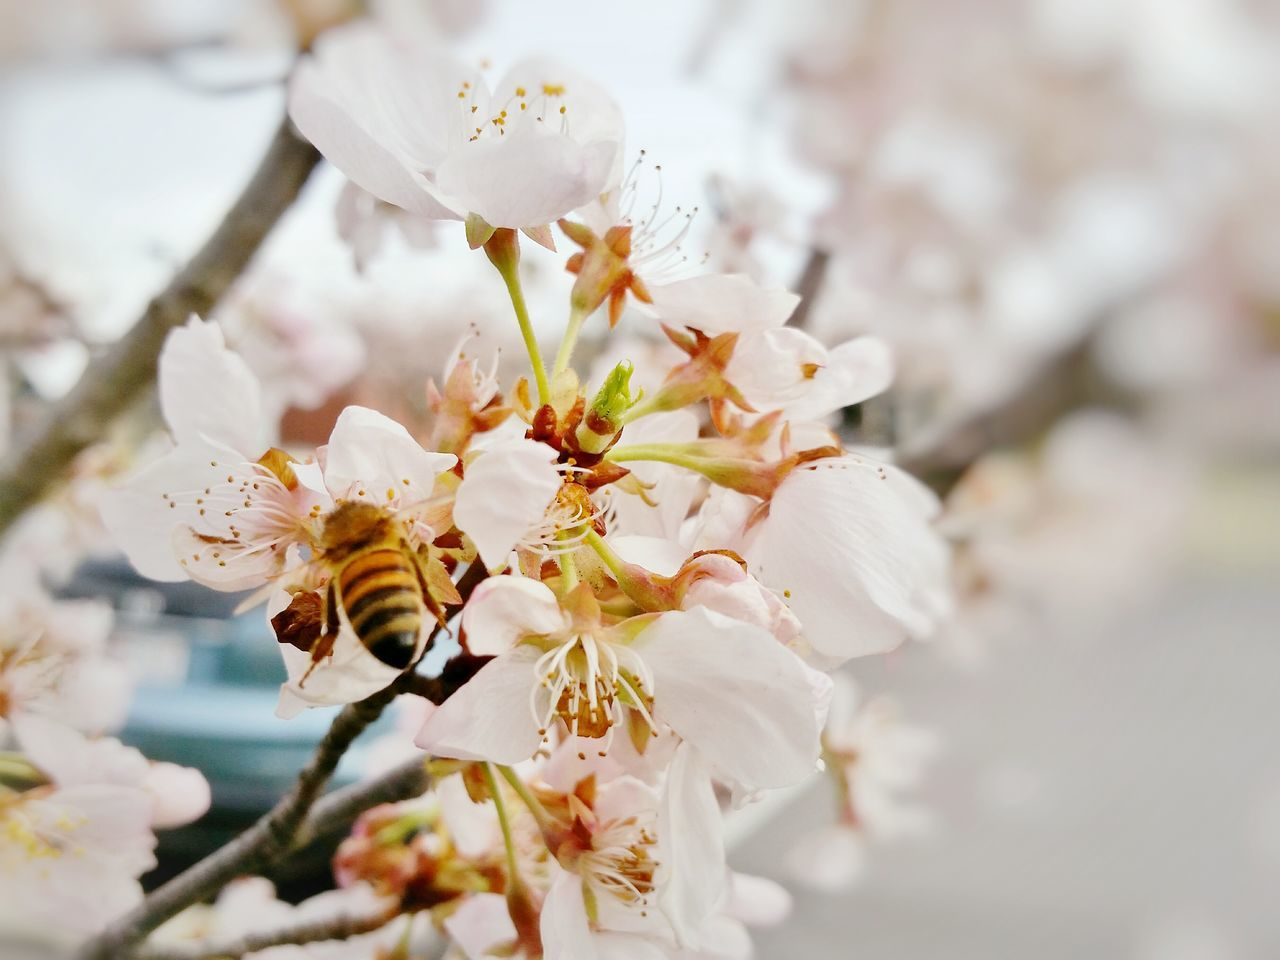 Beauty In Nature,  Bee,  Blossom,  Branch,  Close-Up